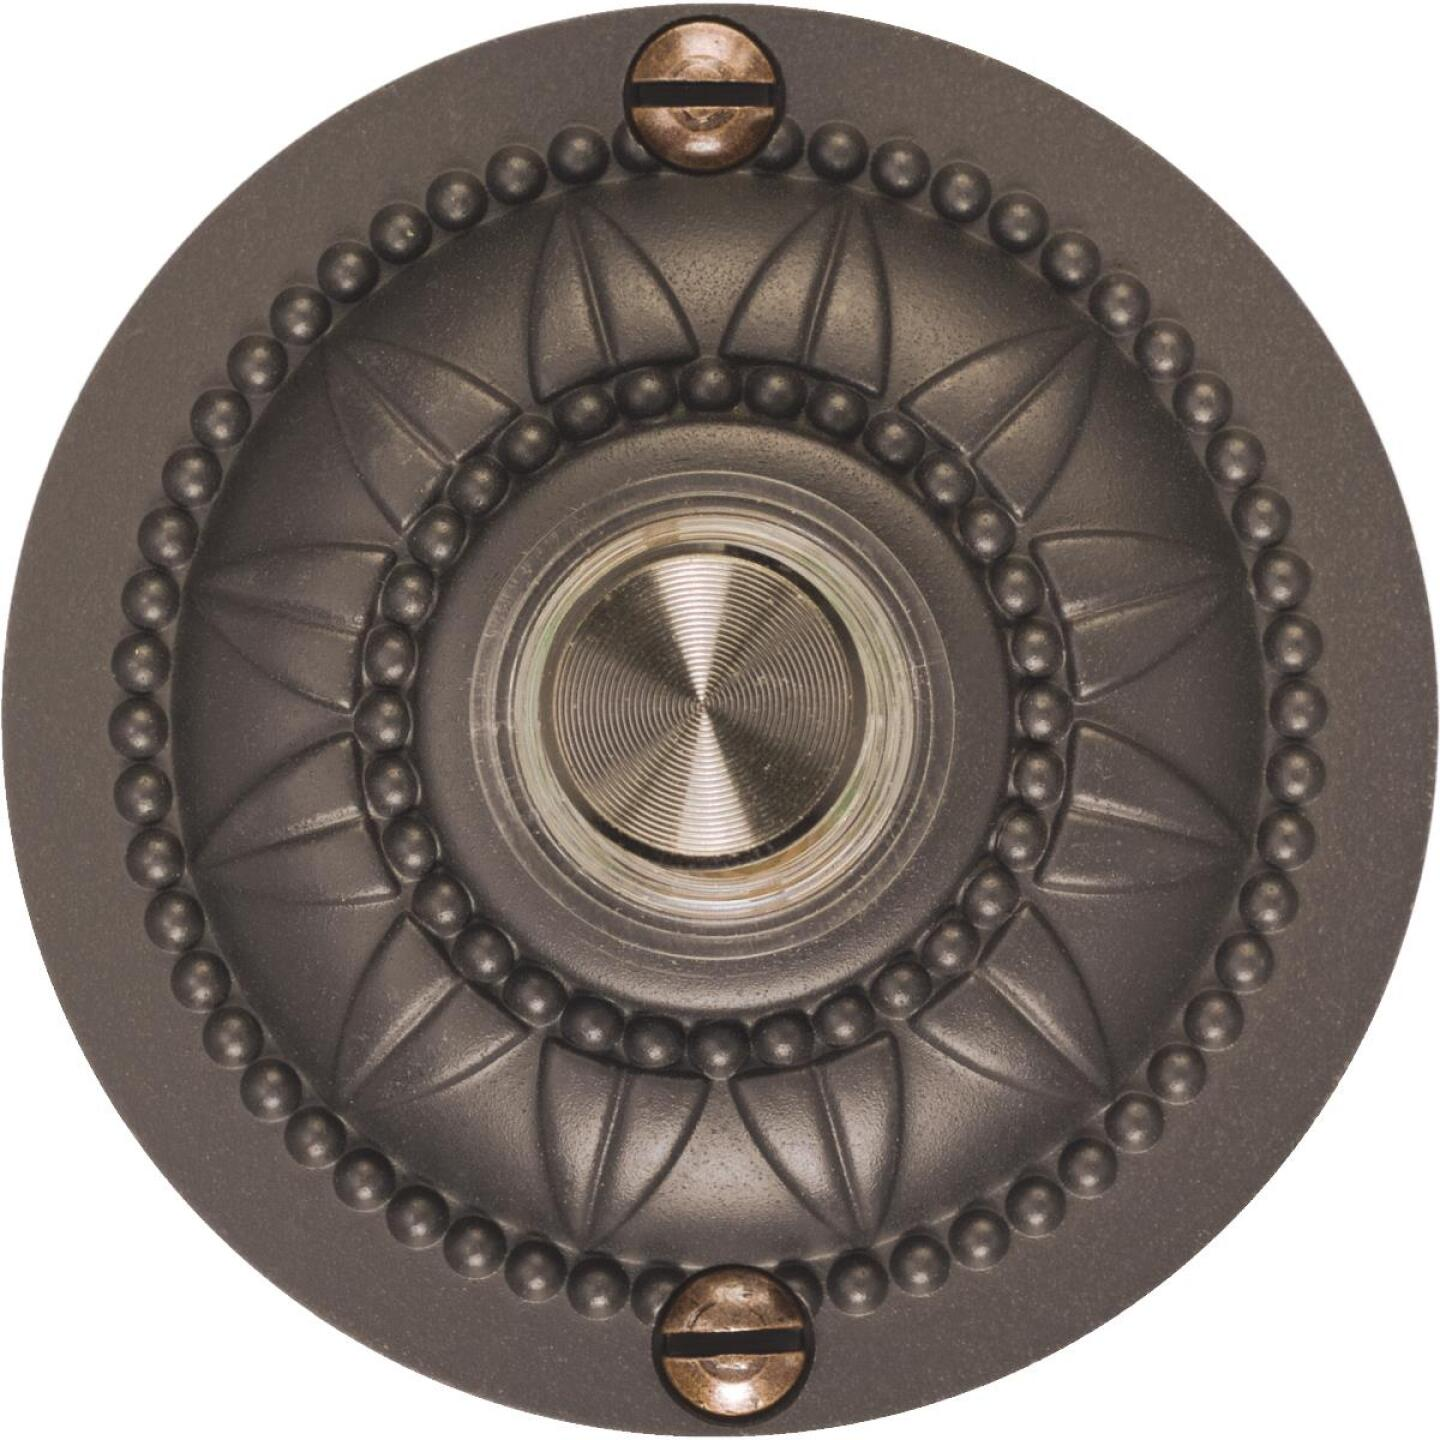 IQ America Wired Oil Rubbed Bronze Medallion Design Lighted Doorbell Push-Button Image 1